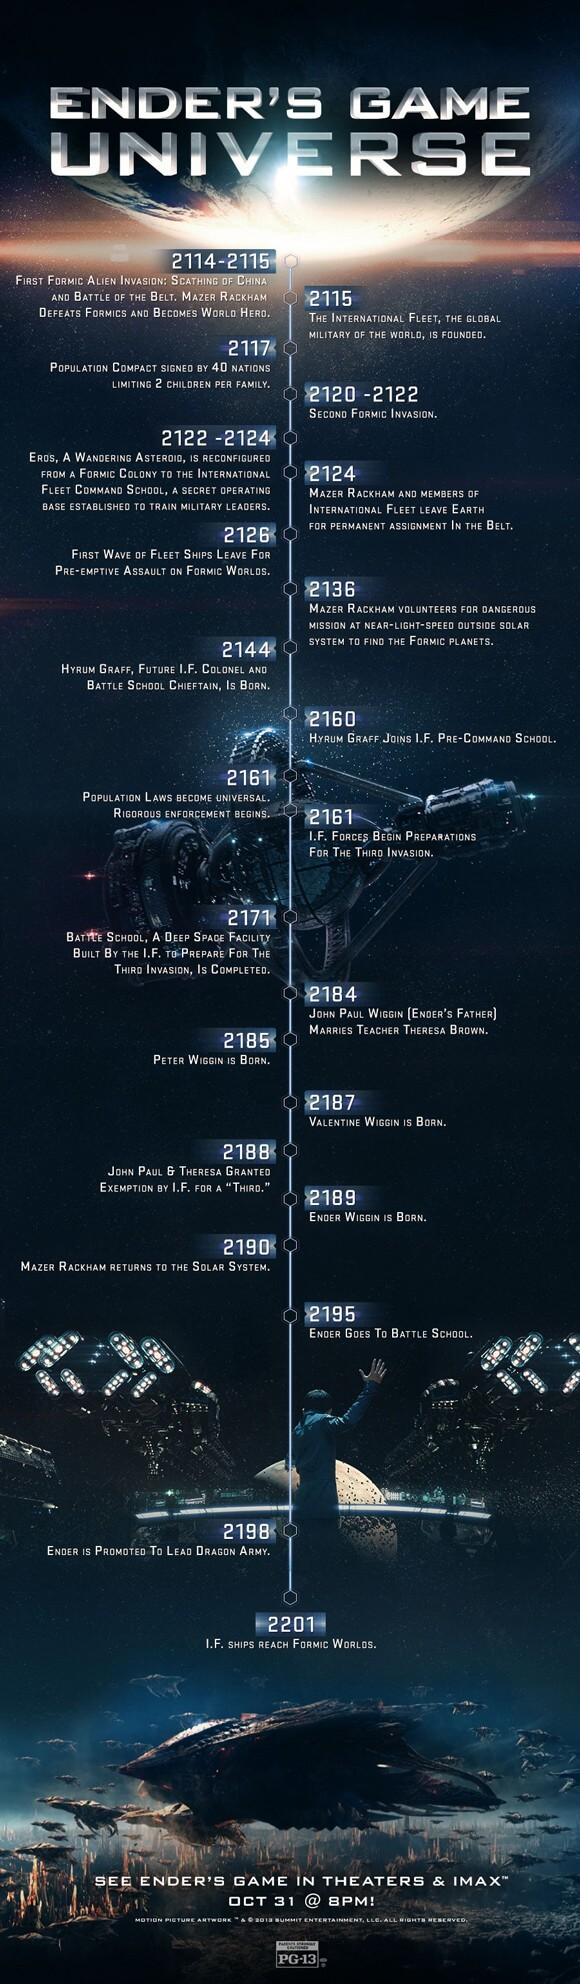 Ender's Game Infographic